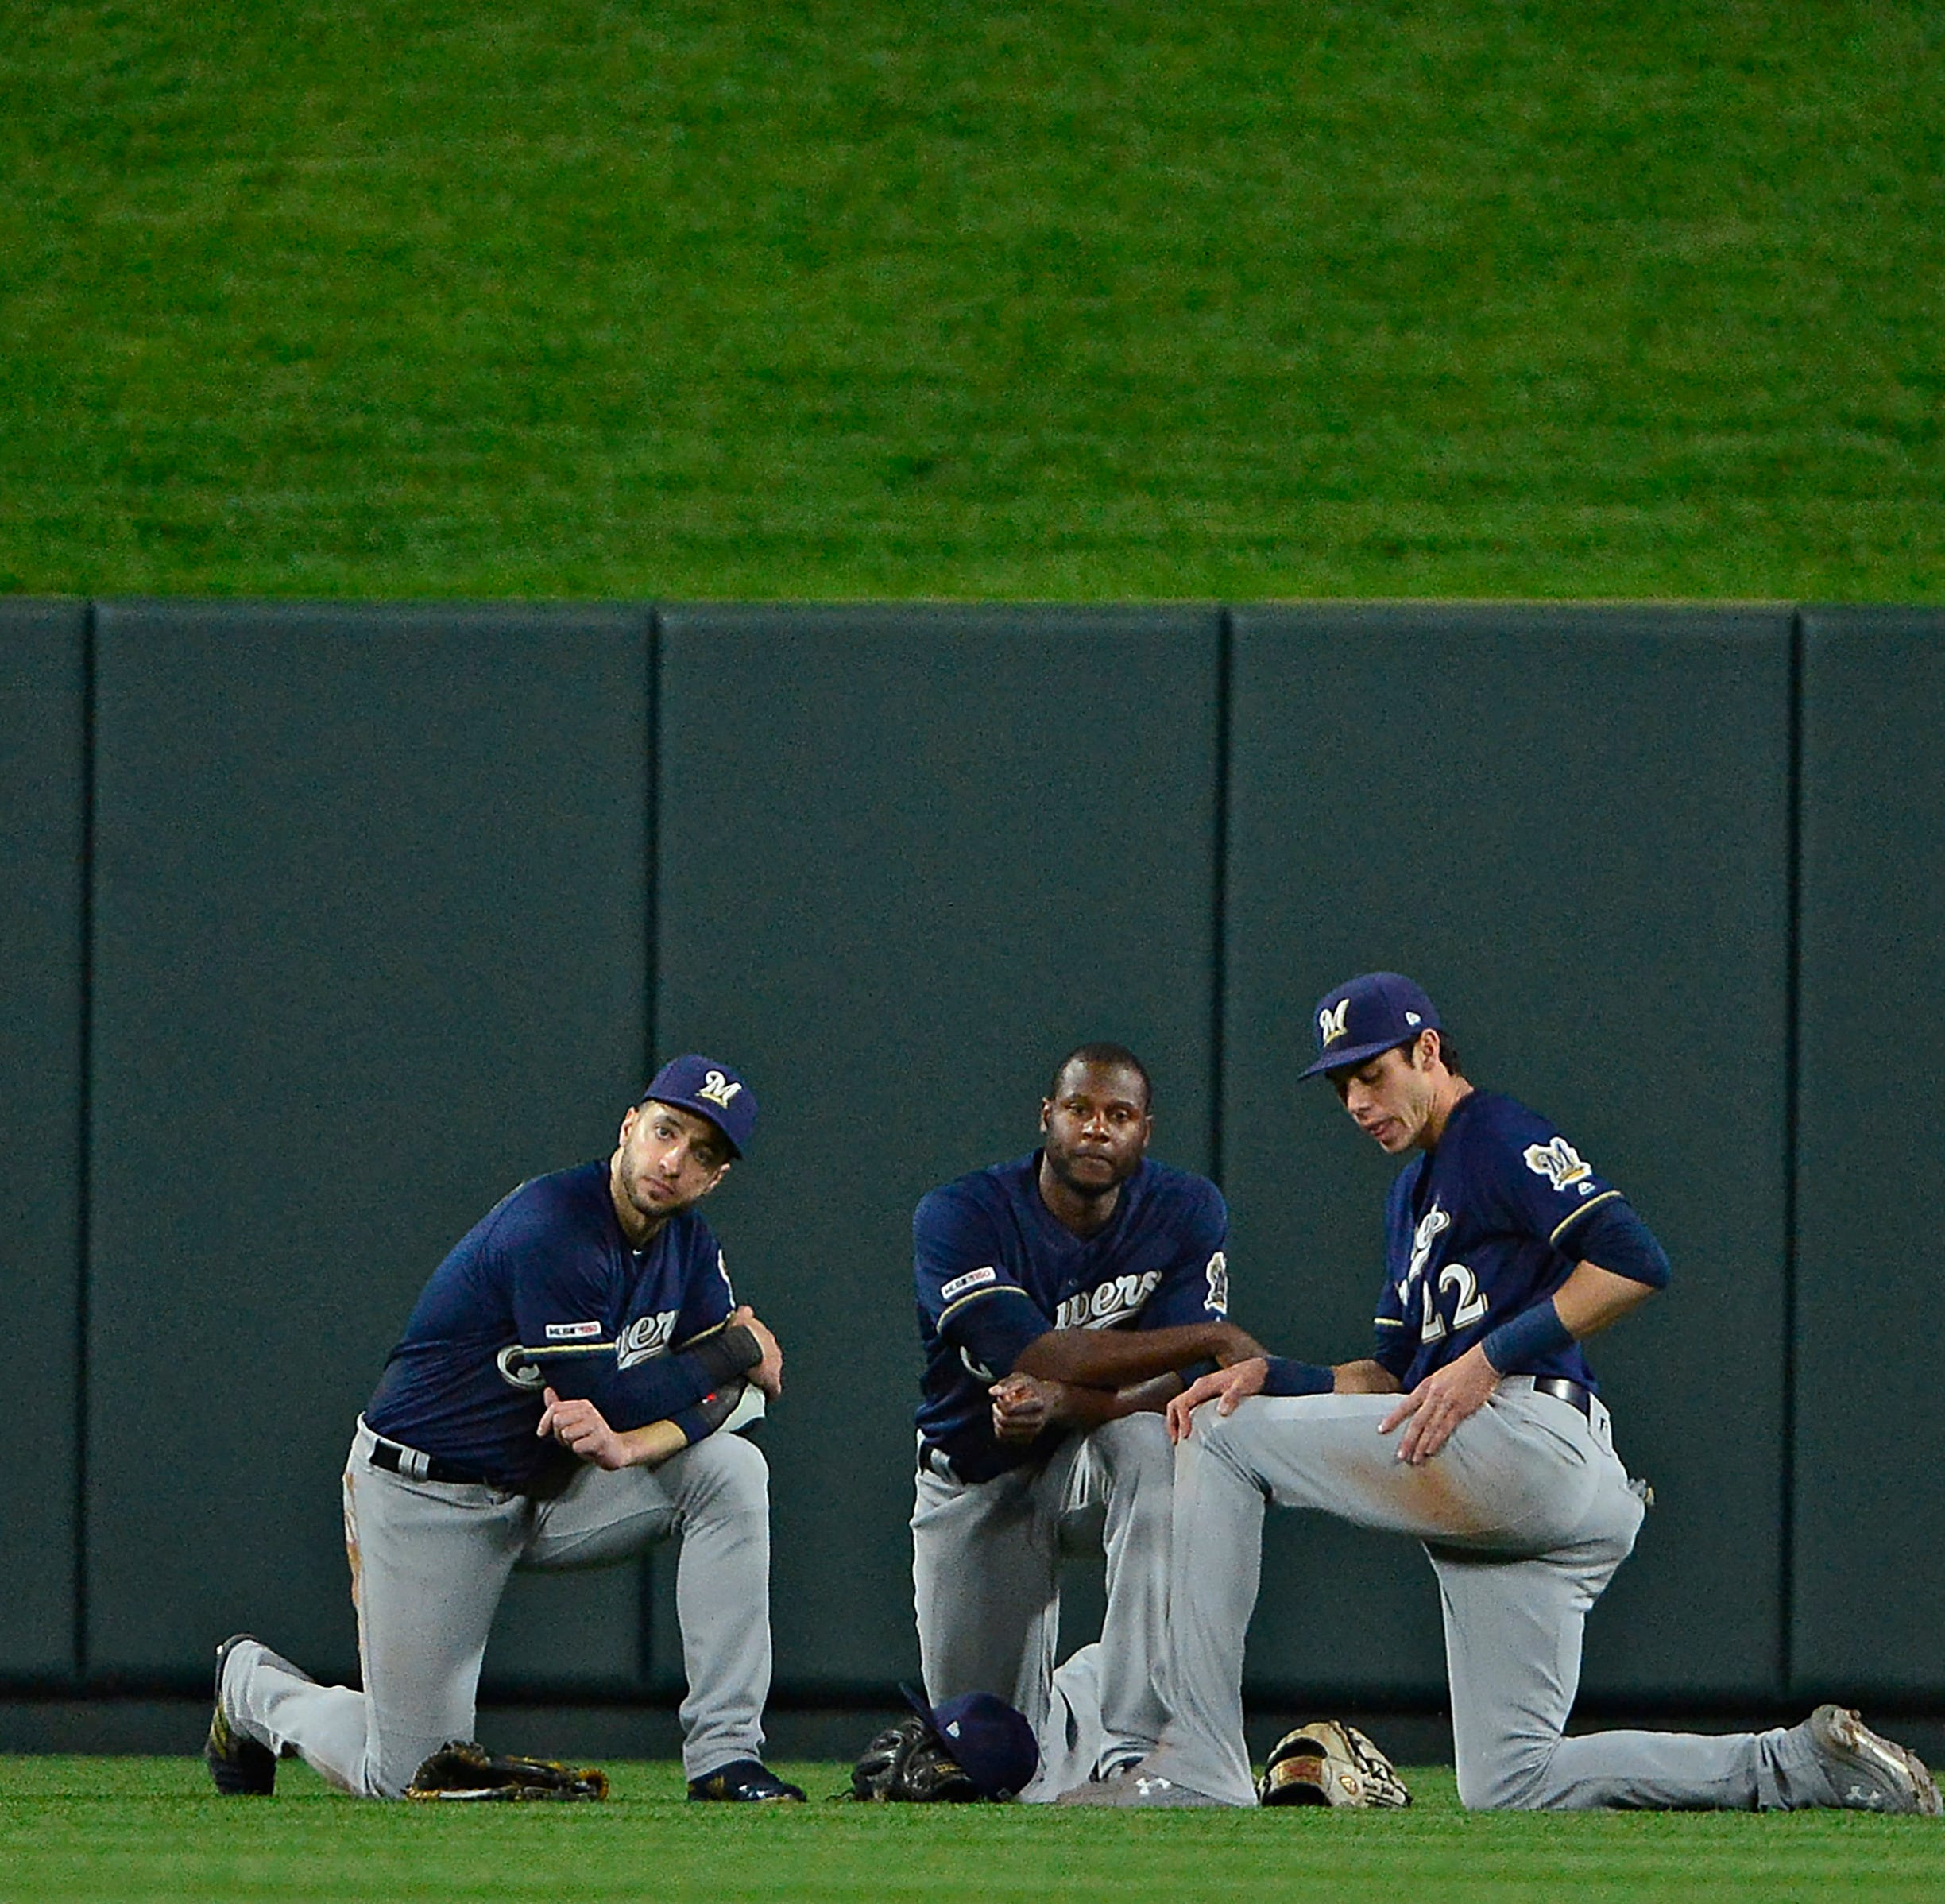 Thankfully for the Brewers, a tough April is finally winding down